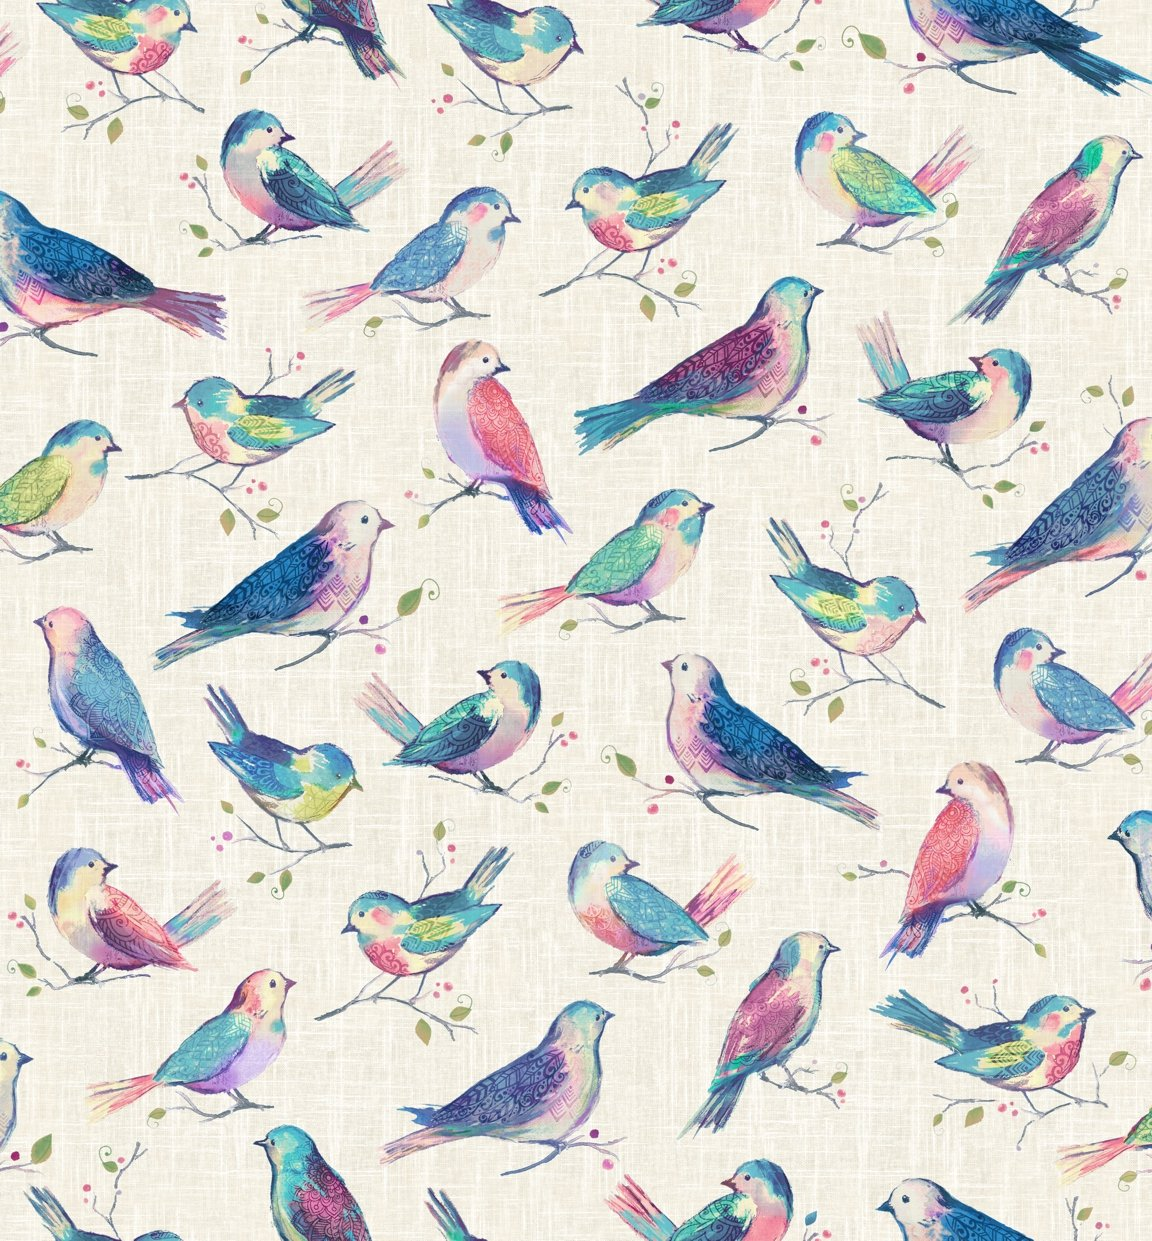 All a Twitter Digitally Printed Birds (Second Colorway): Sweatpea Birds